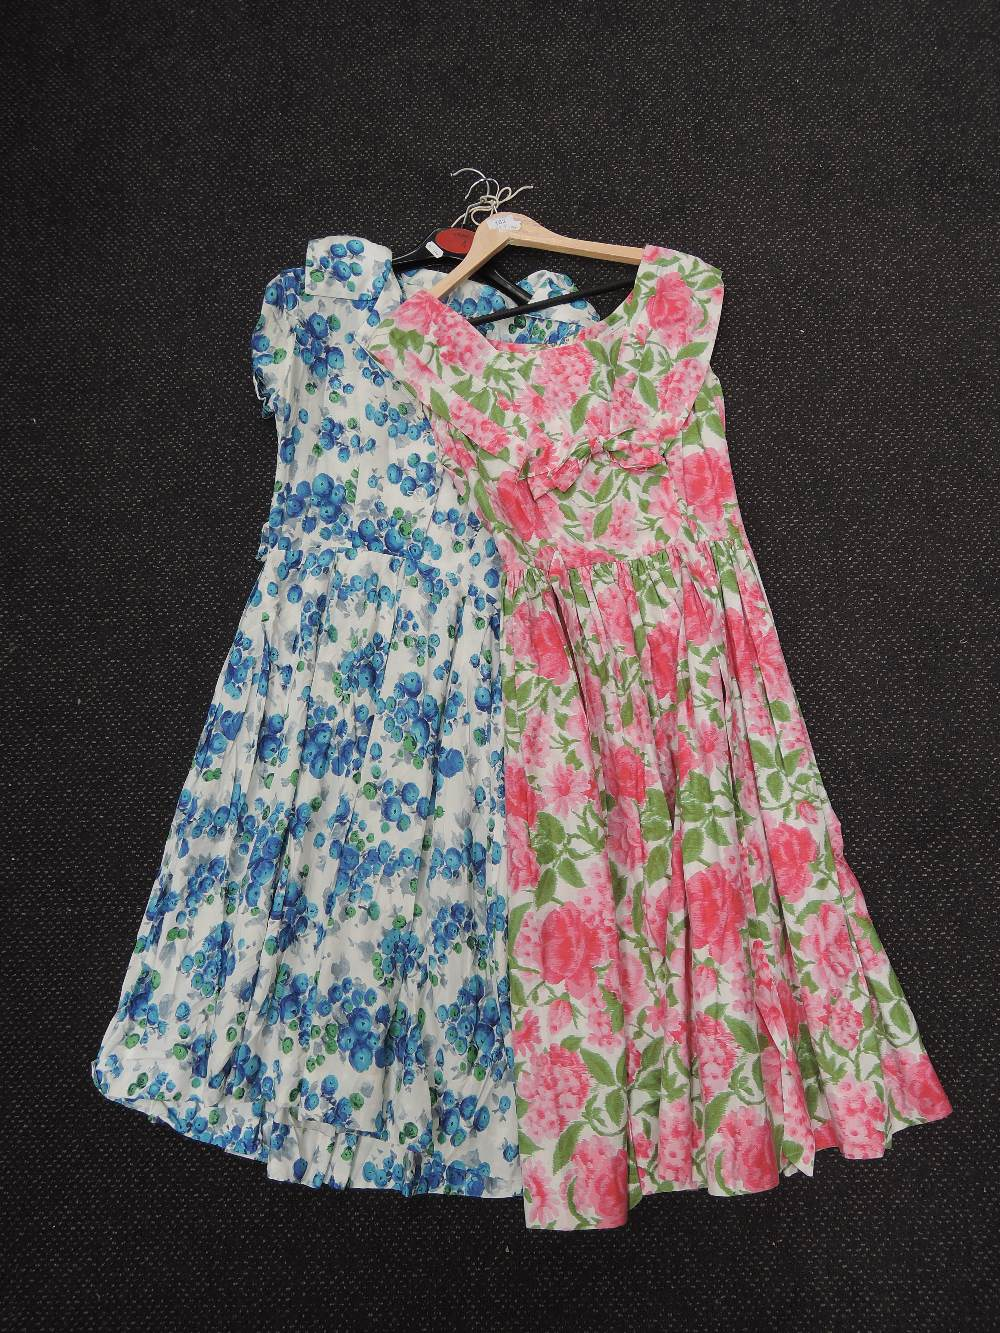 Two ladies vintage floral summer dresses in shades of blue and pink by Benhams, London and